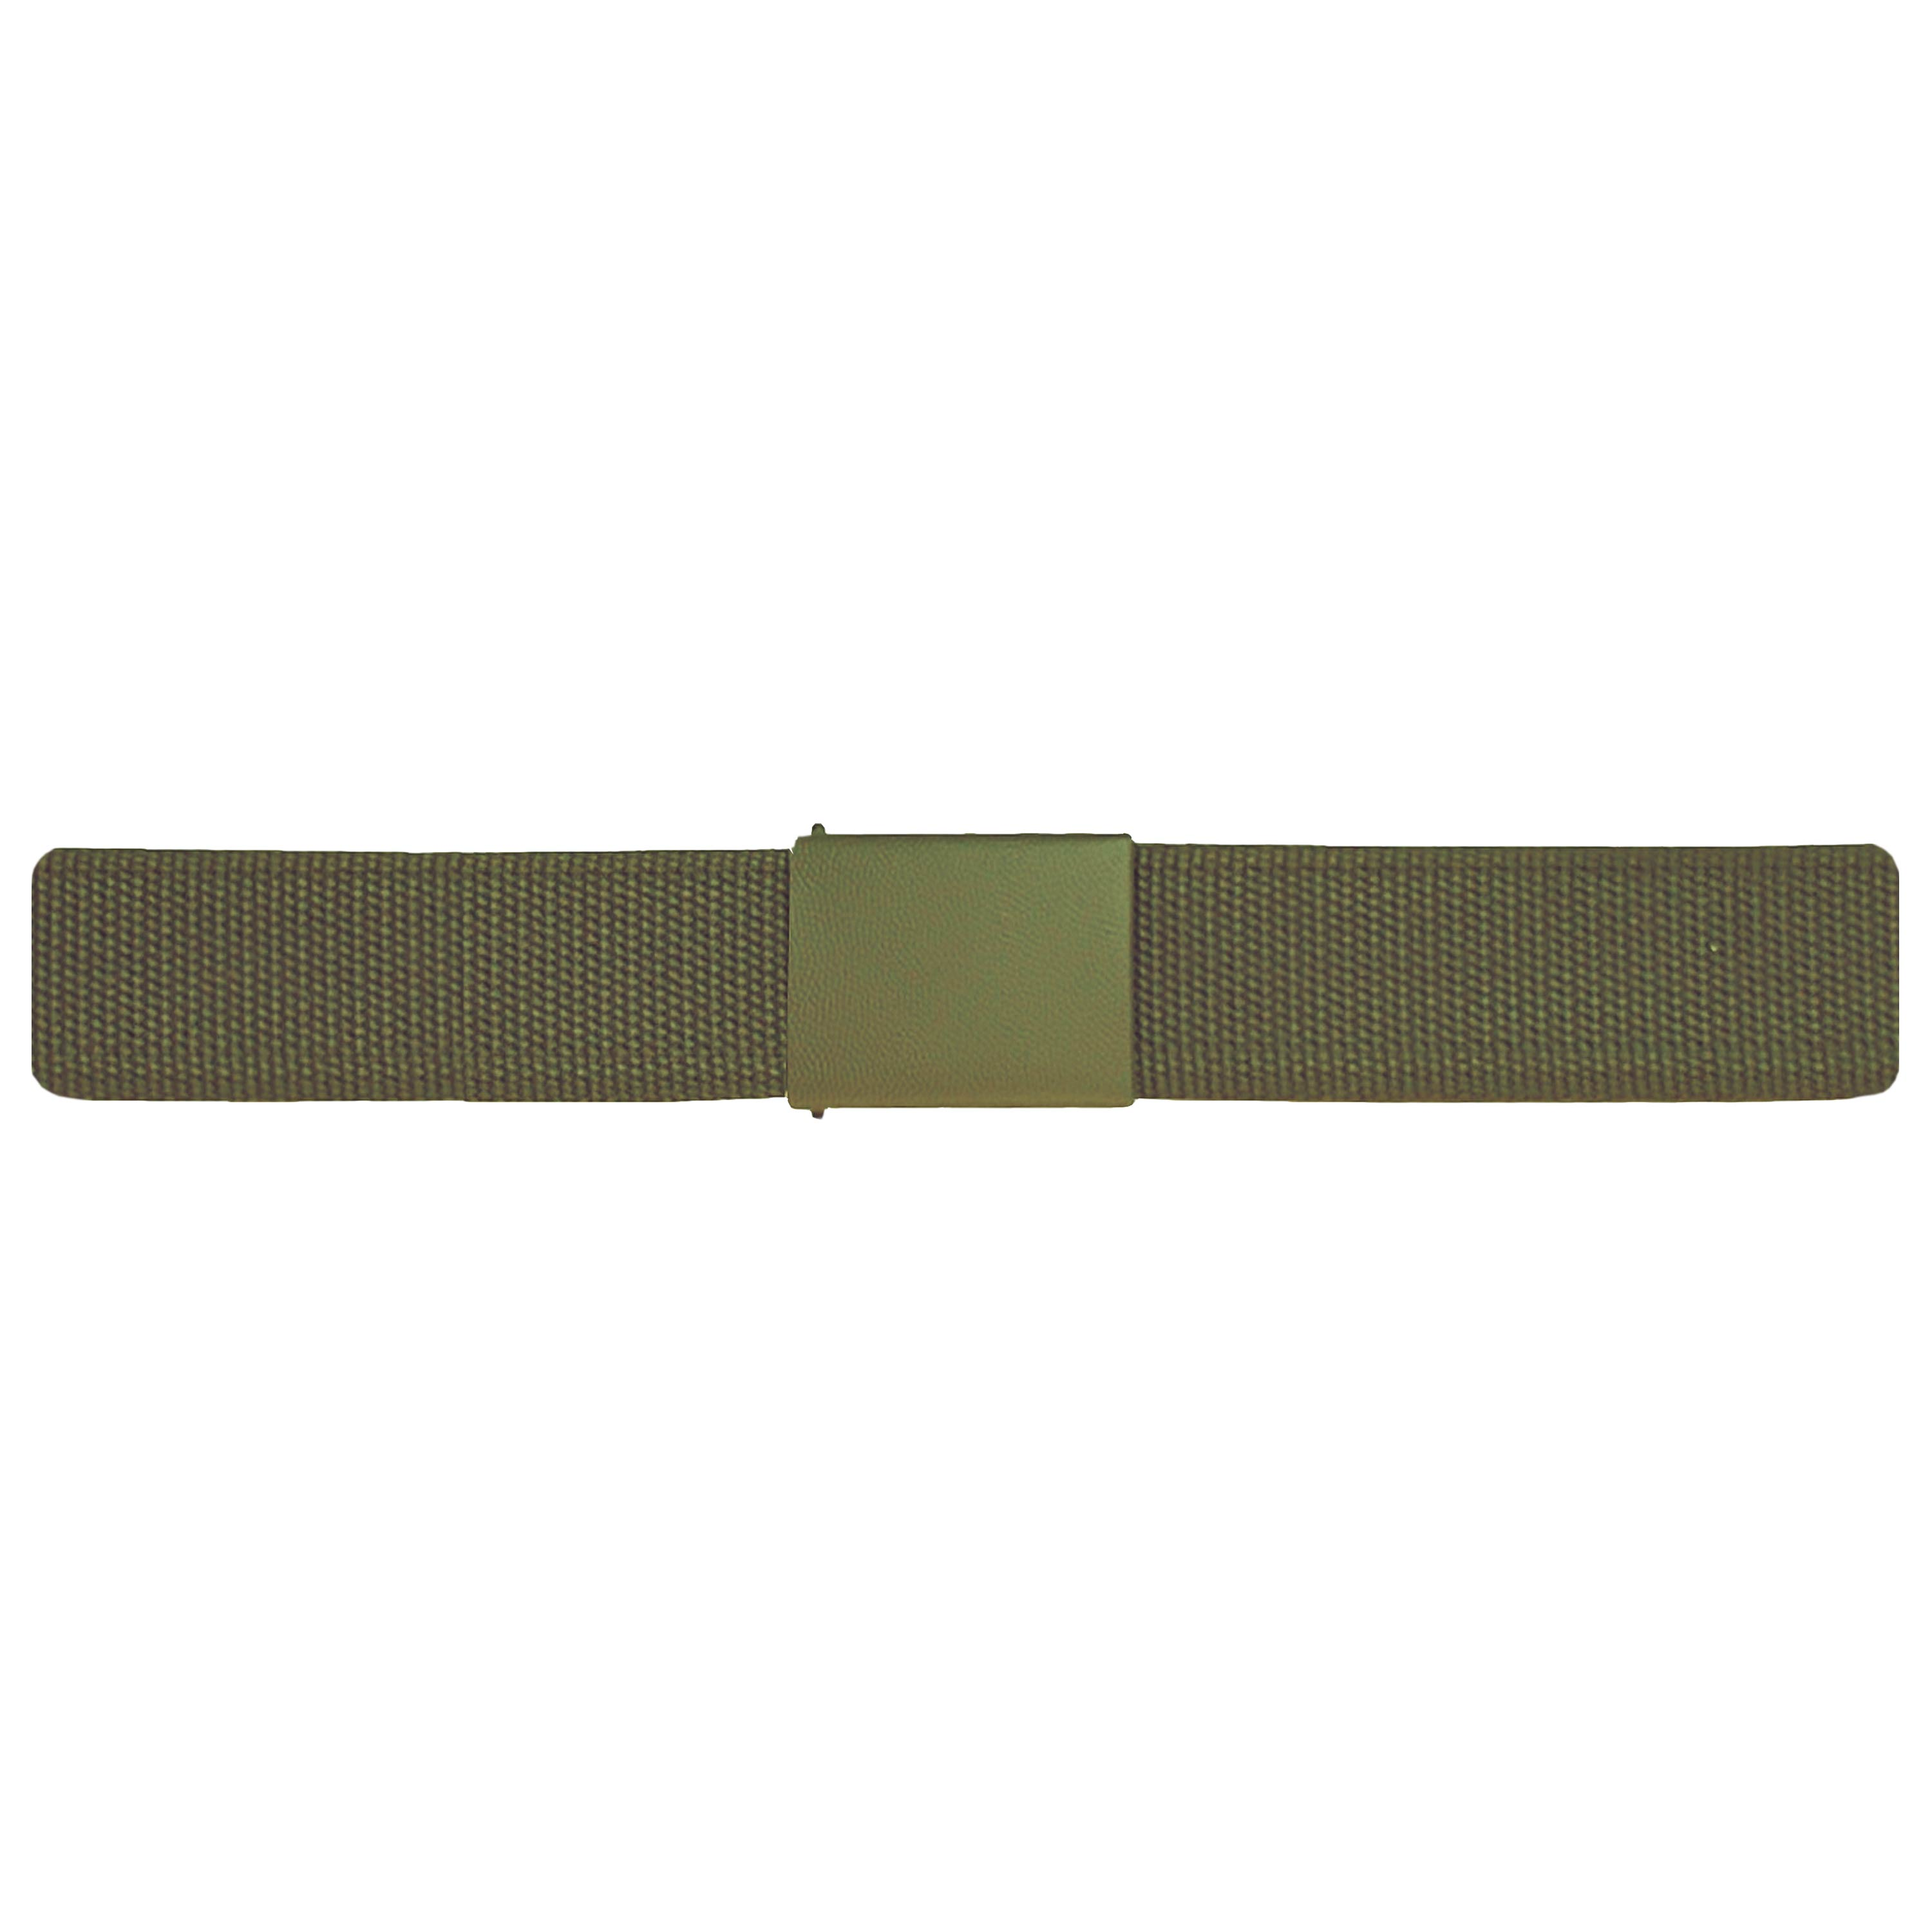 German Army Belt Textile Used olive